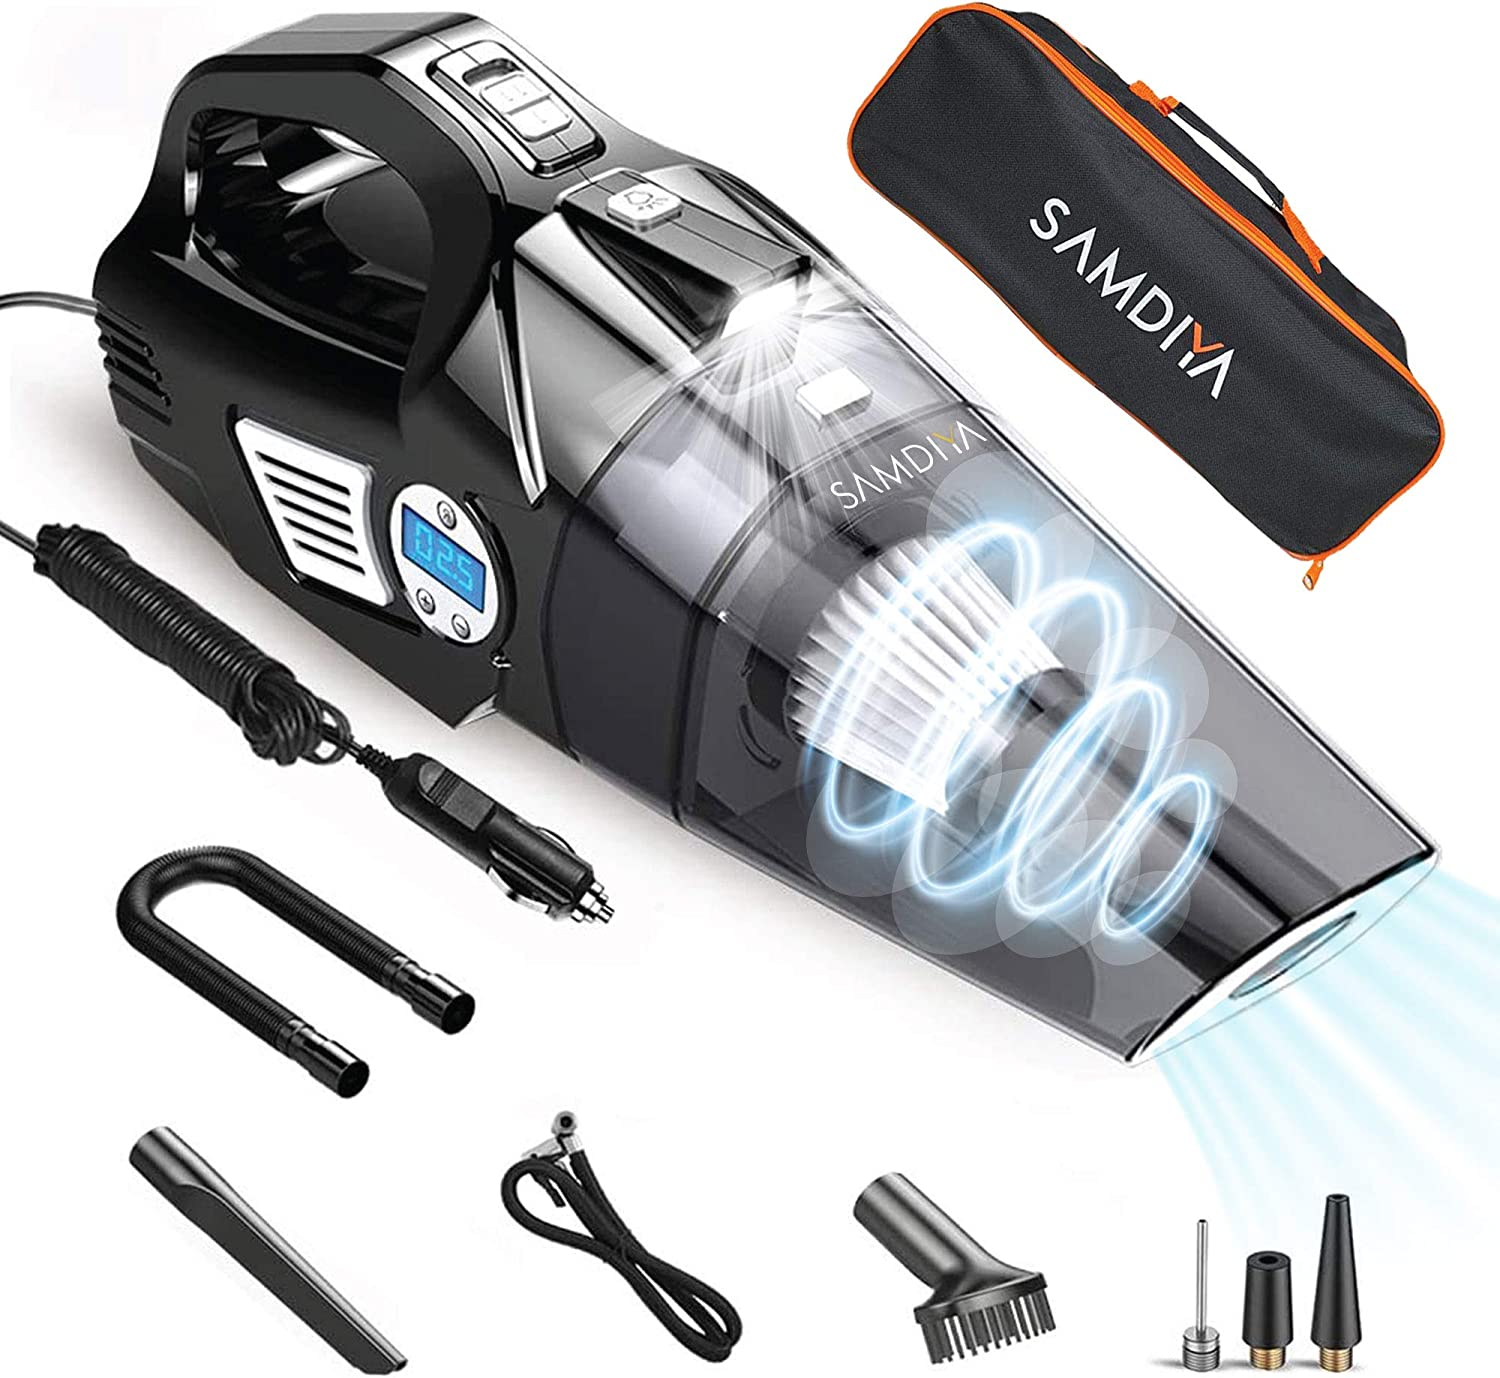 Auto Shut Off Feature SAMDIYA 4 in 1 Small Hand Car Vacuum Cleaner-5500Pa Air Compressor Pump with Digital Tire Pressure Gauge LCD Display 16 Foot Cord,Bonus HEPA Filter and Nozzle